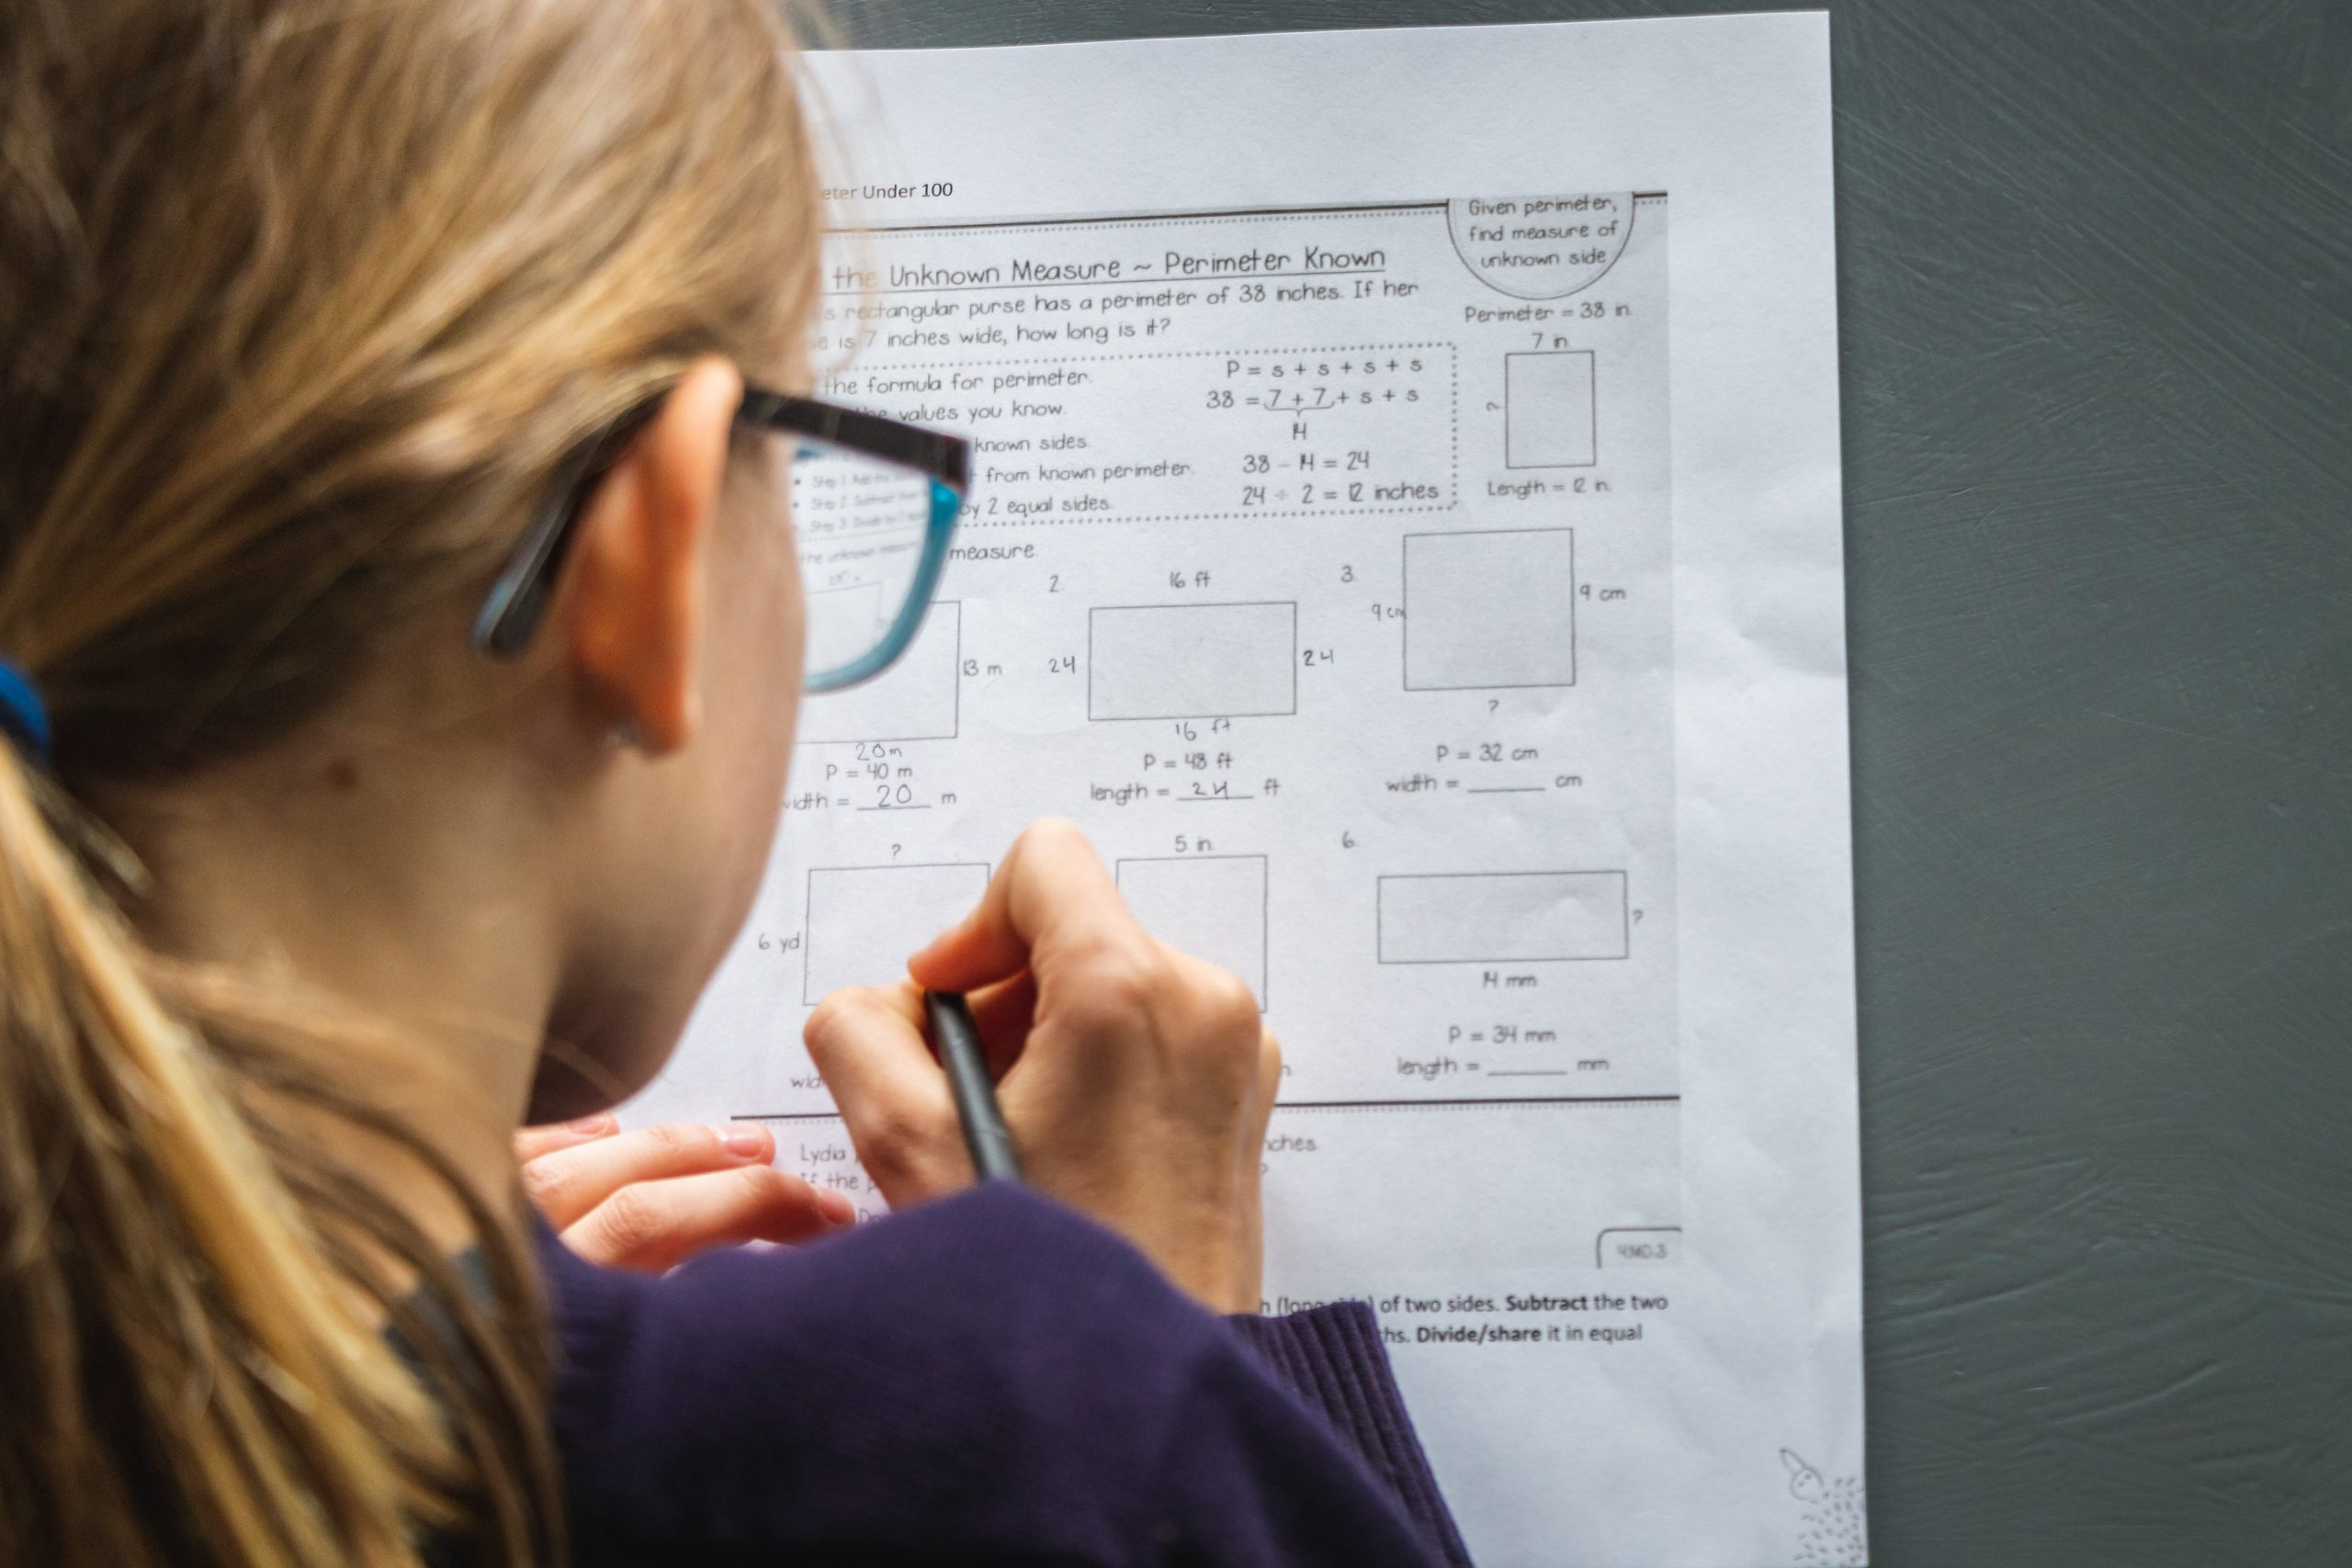 The photograph shows a close up of a young girl doing some homework. She is blonde and is wearing black glasses